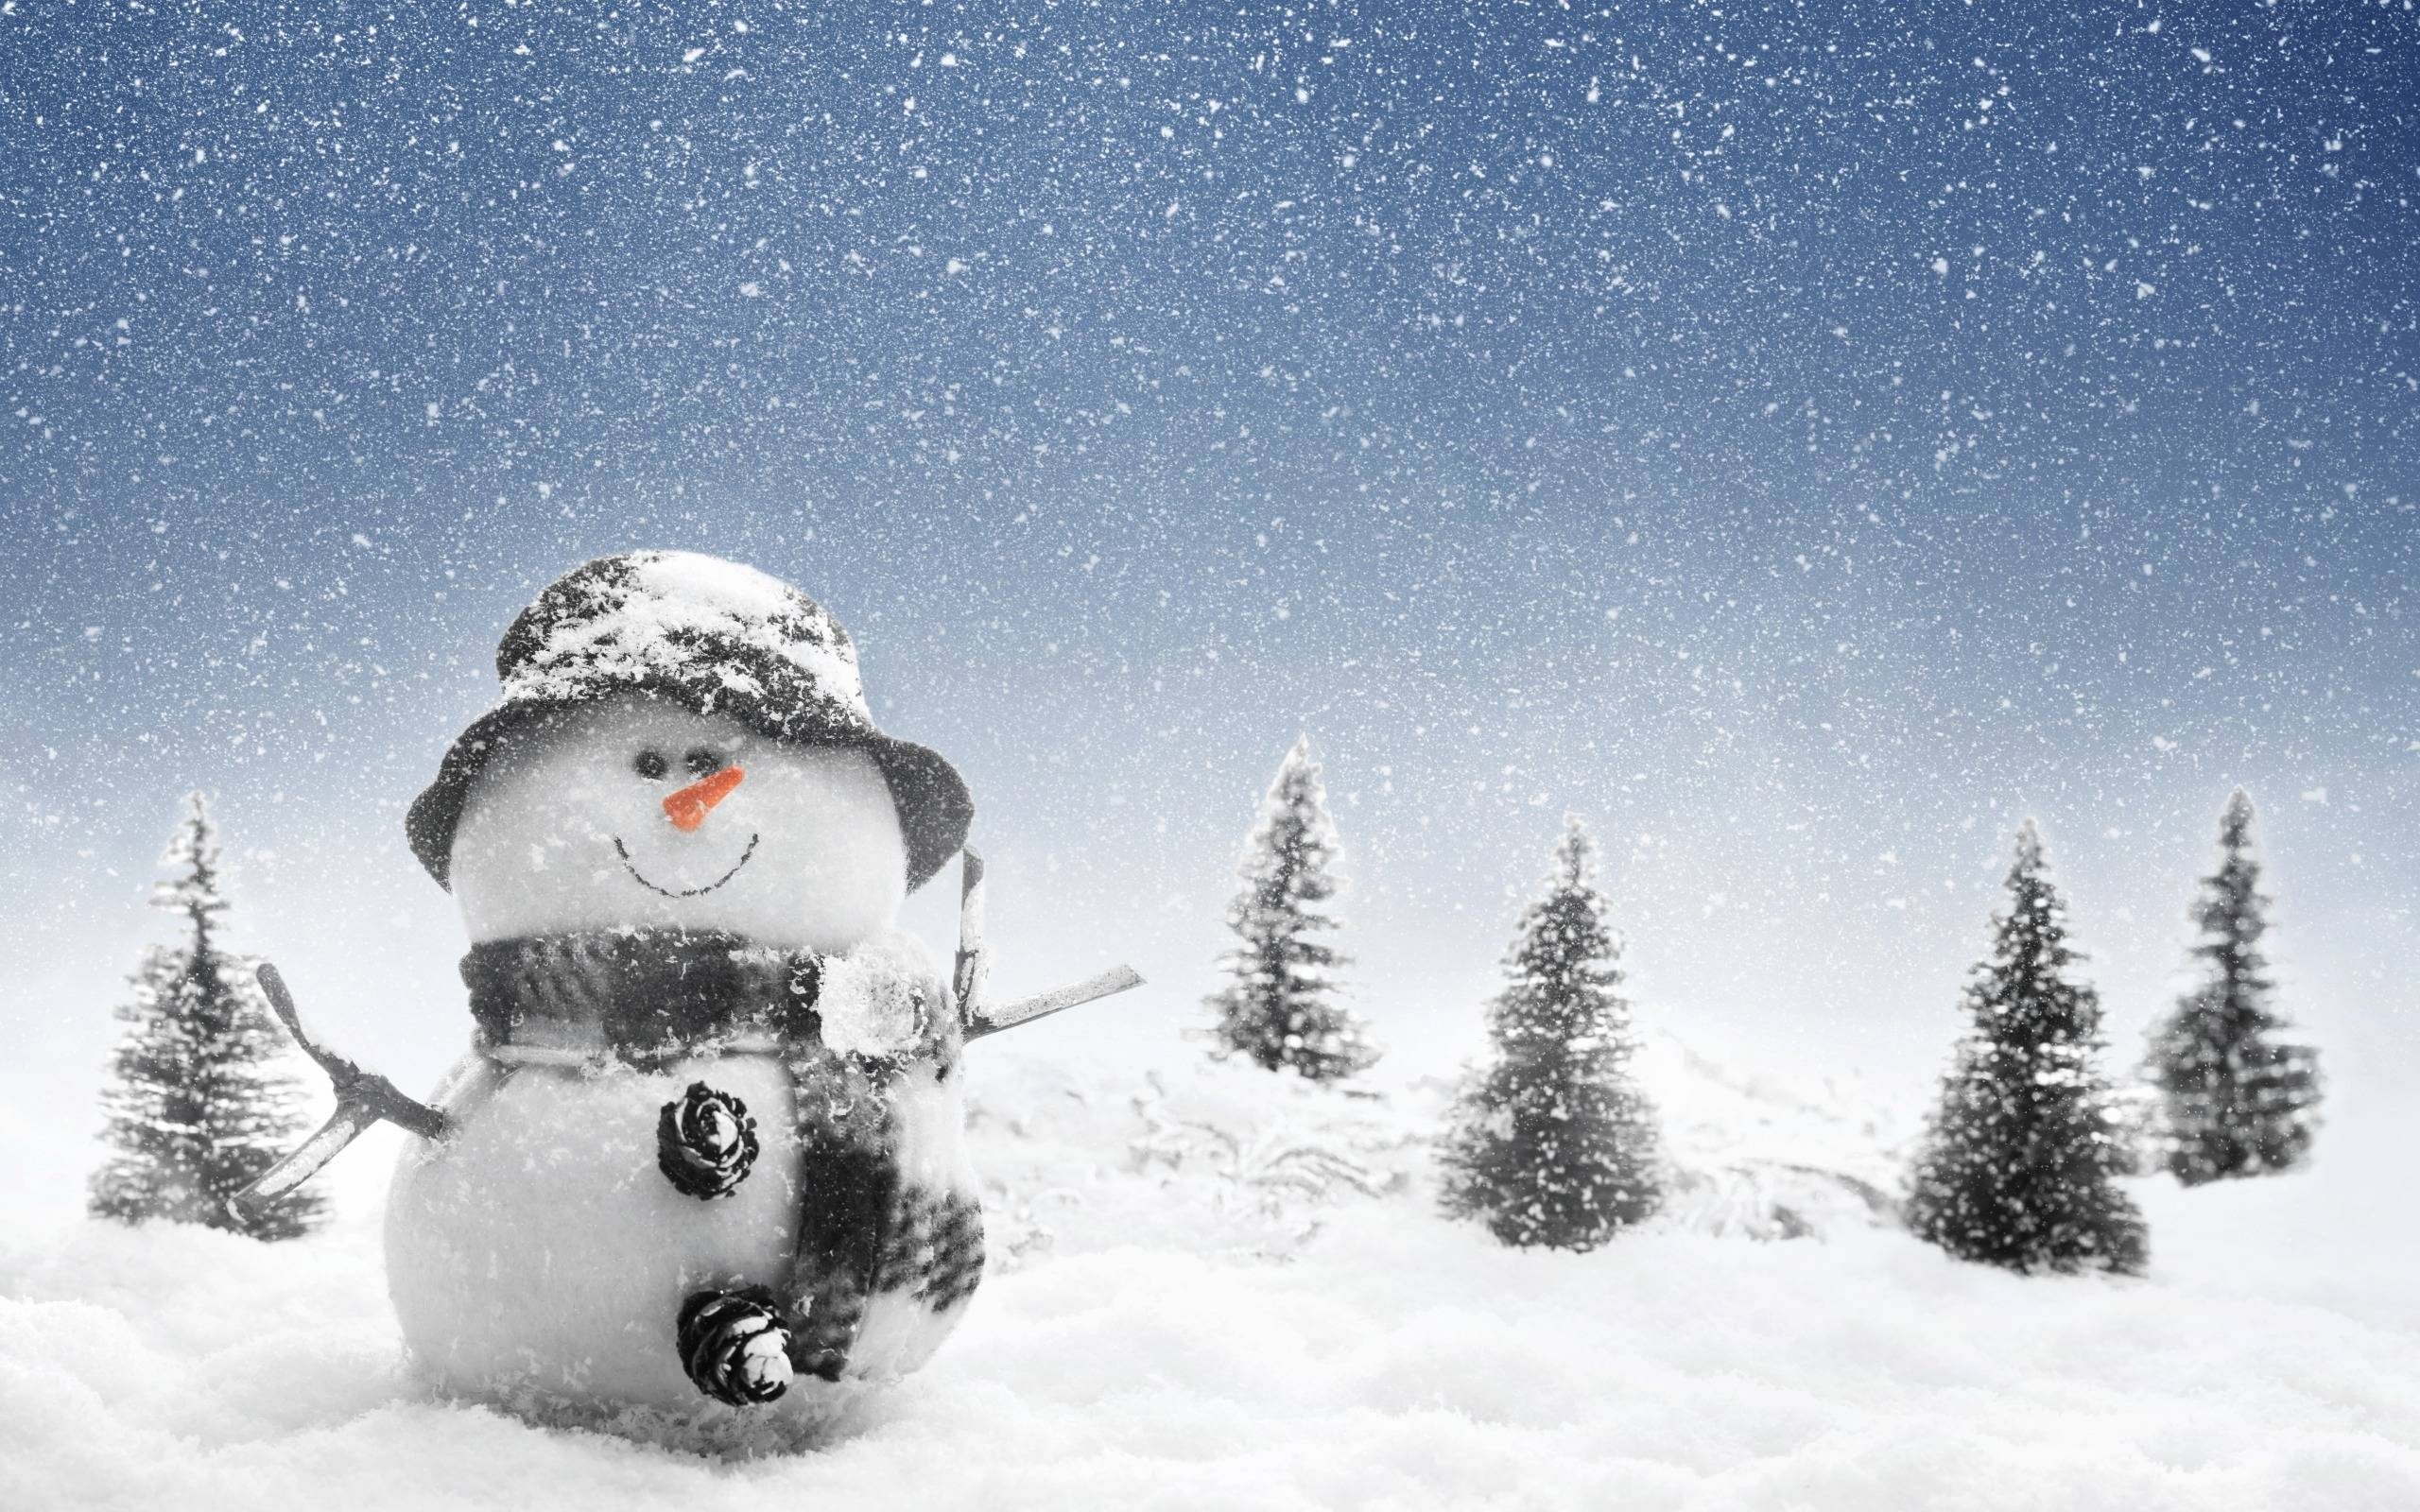 Snowman Wallpapers 2560x1600